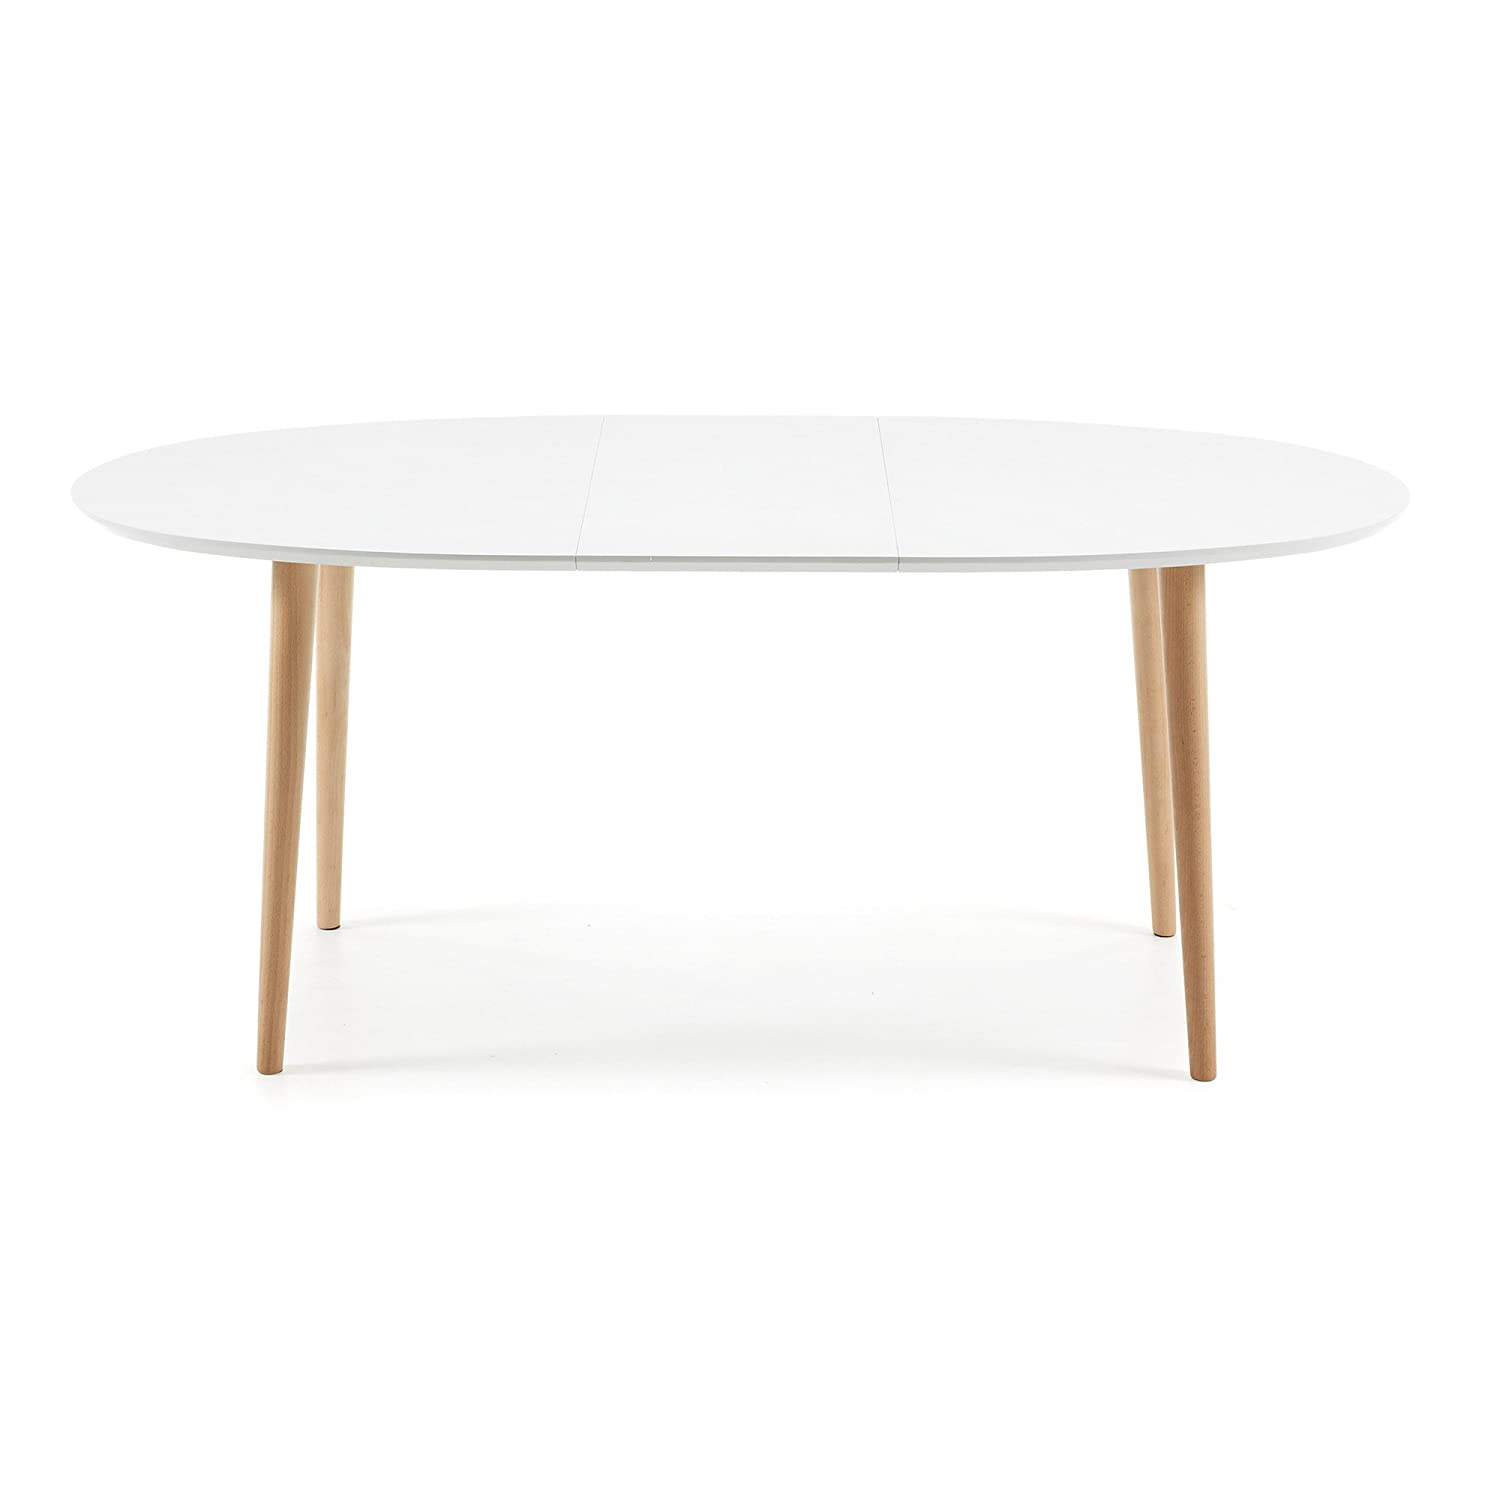 Kave Home Table Oqui Ovale Extensible 140 220 Cm Naturel Et Blanc  # Meuble Tv Kavehome